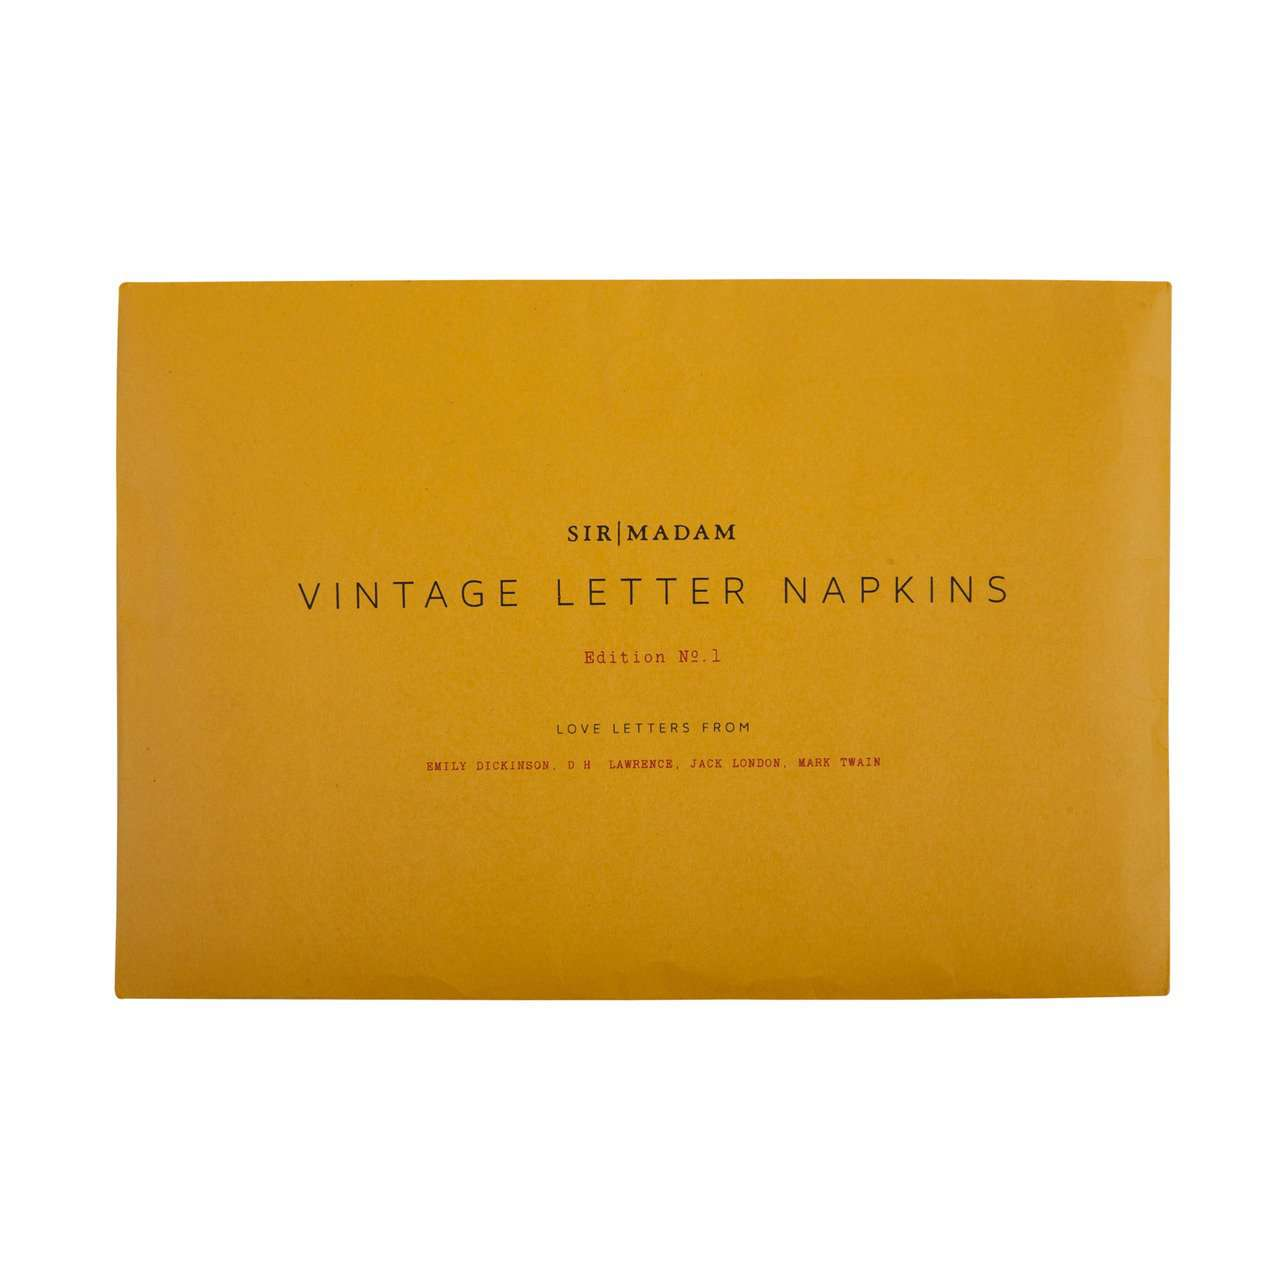 Love Letters, set I | Set of 4 cotton voile love letter napkins | Rue Saint Paul